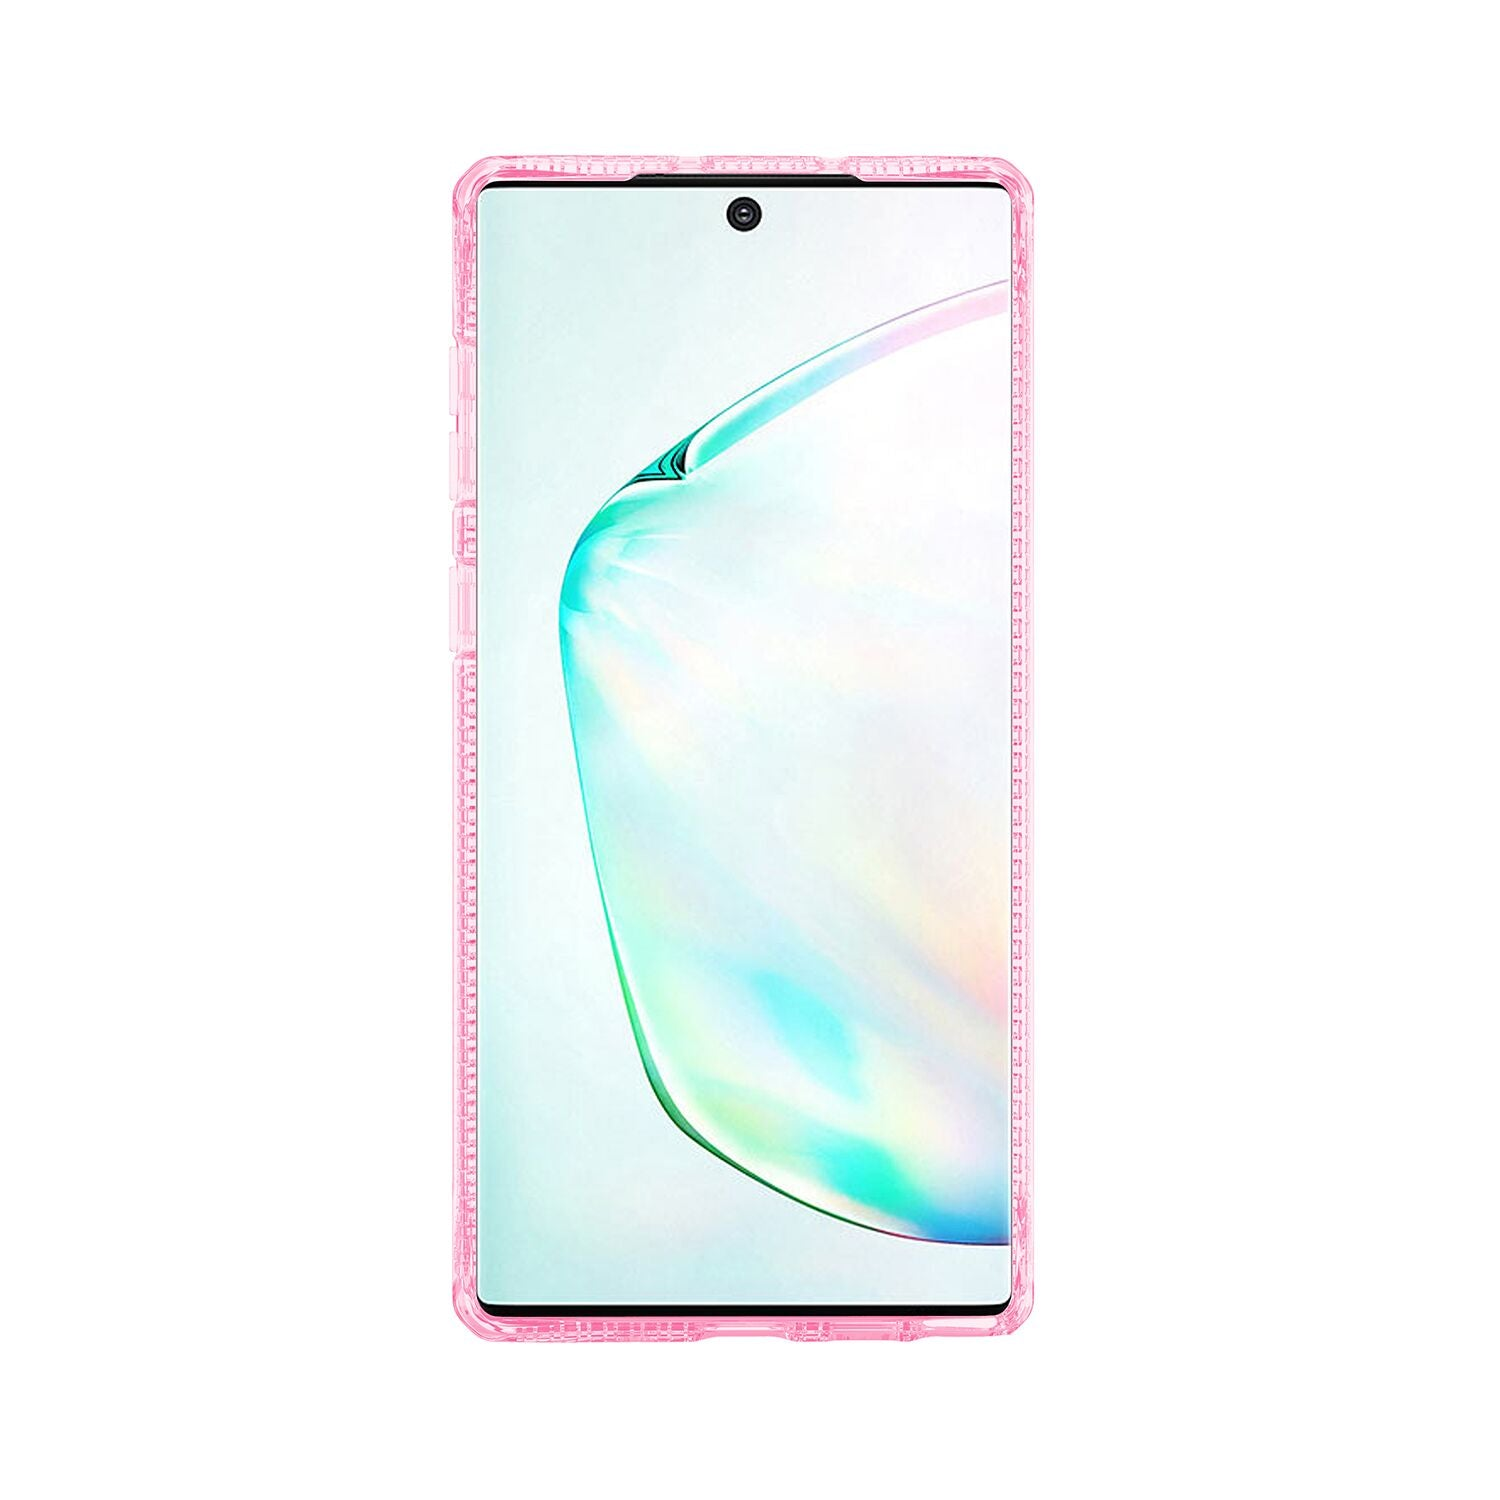 ITSKINS HYBRID CLEAR FOR SAMSUNG NOTE 10 & NOTE 10+ LIGHT PINK & TRANSPARENT